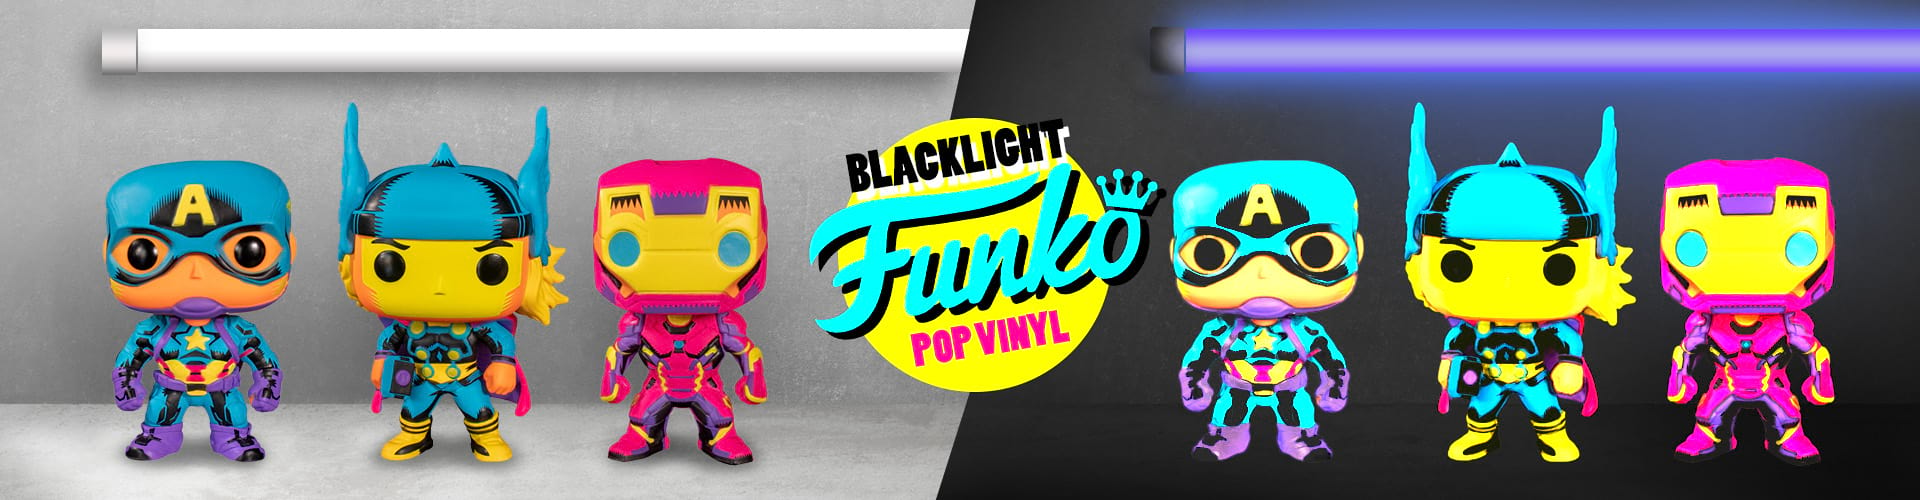 Funko POPs blacklight